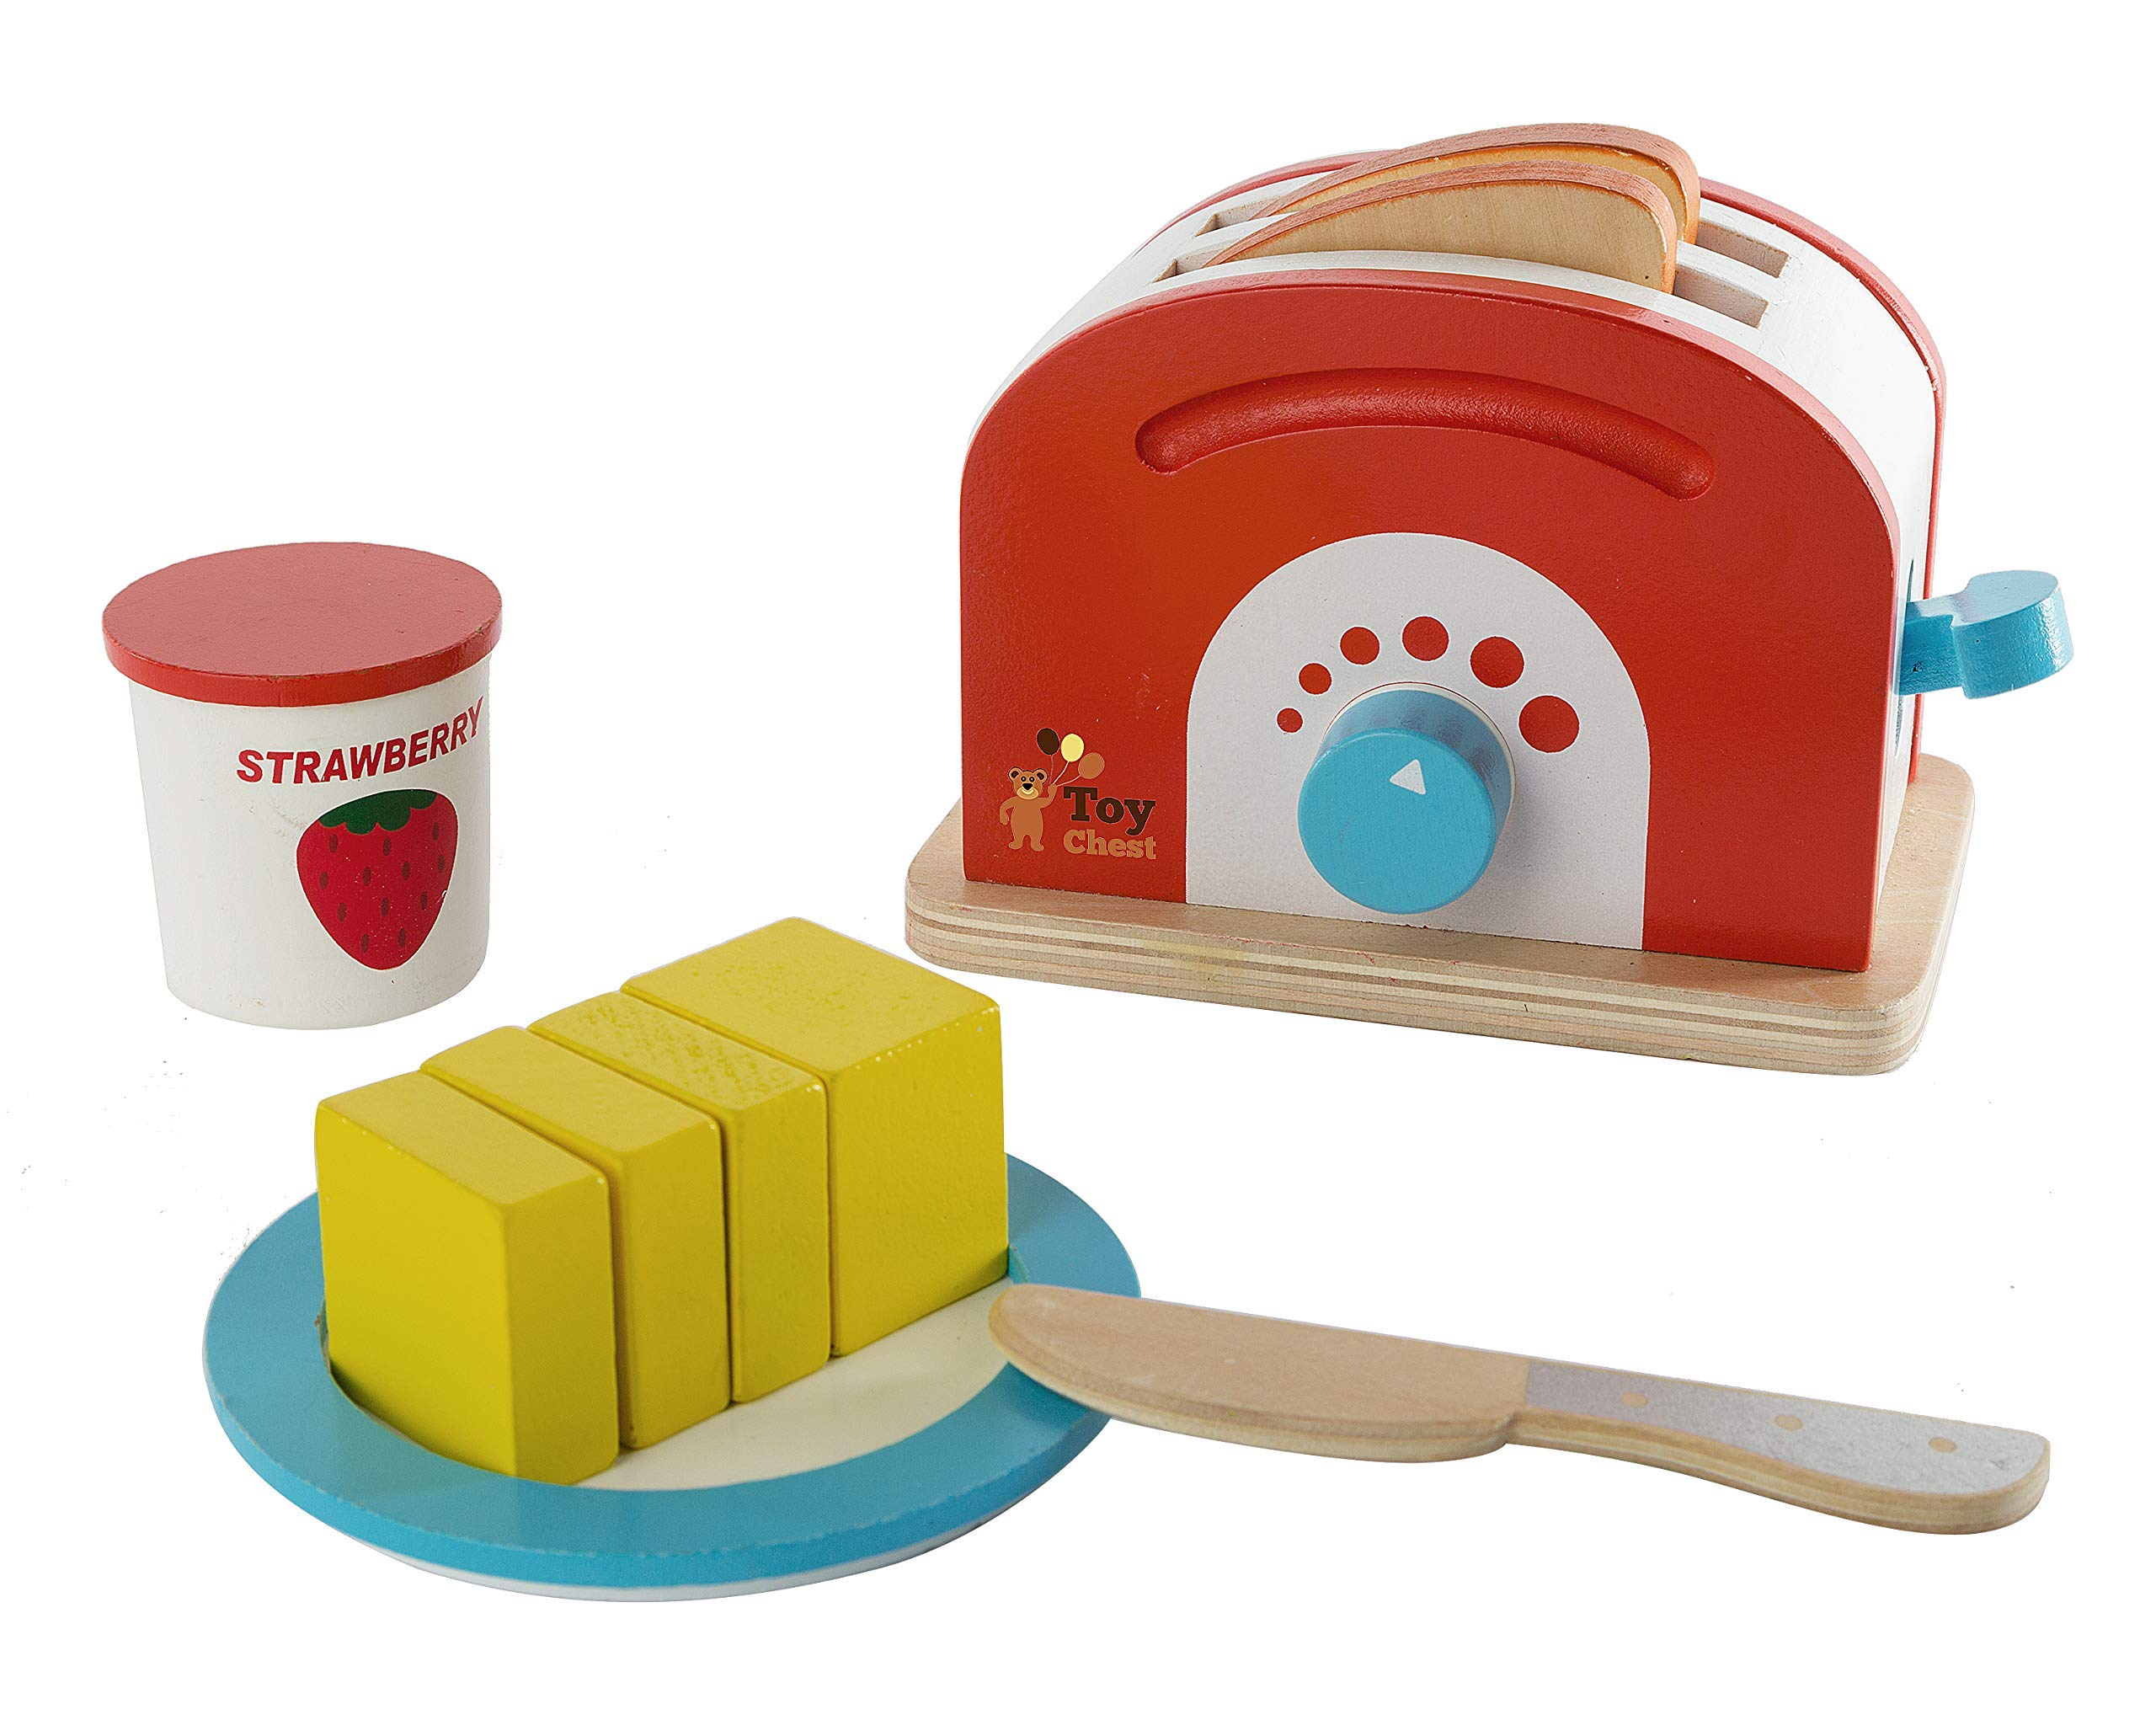 Wooden Toaster Set Cute Durable Colorful Educational Creative Toast Bread Pretend Play Kitchen 10 Piece Play Set for Kids Children Toddlers by Toy Chest Nyc